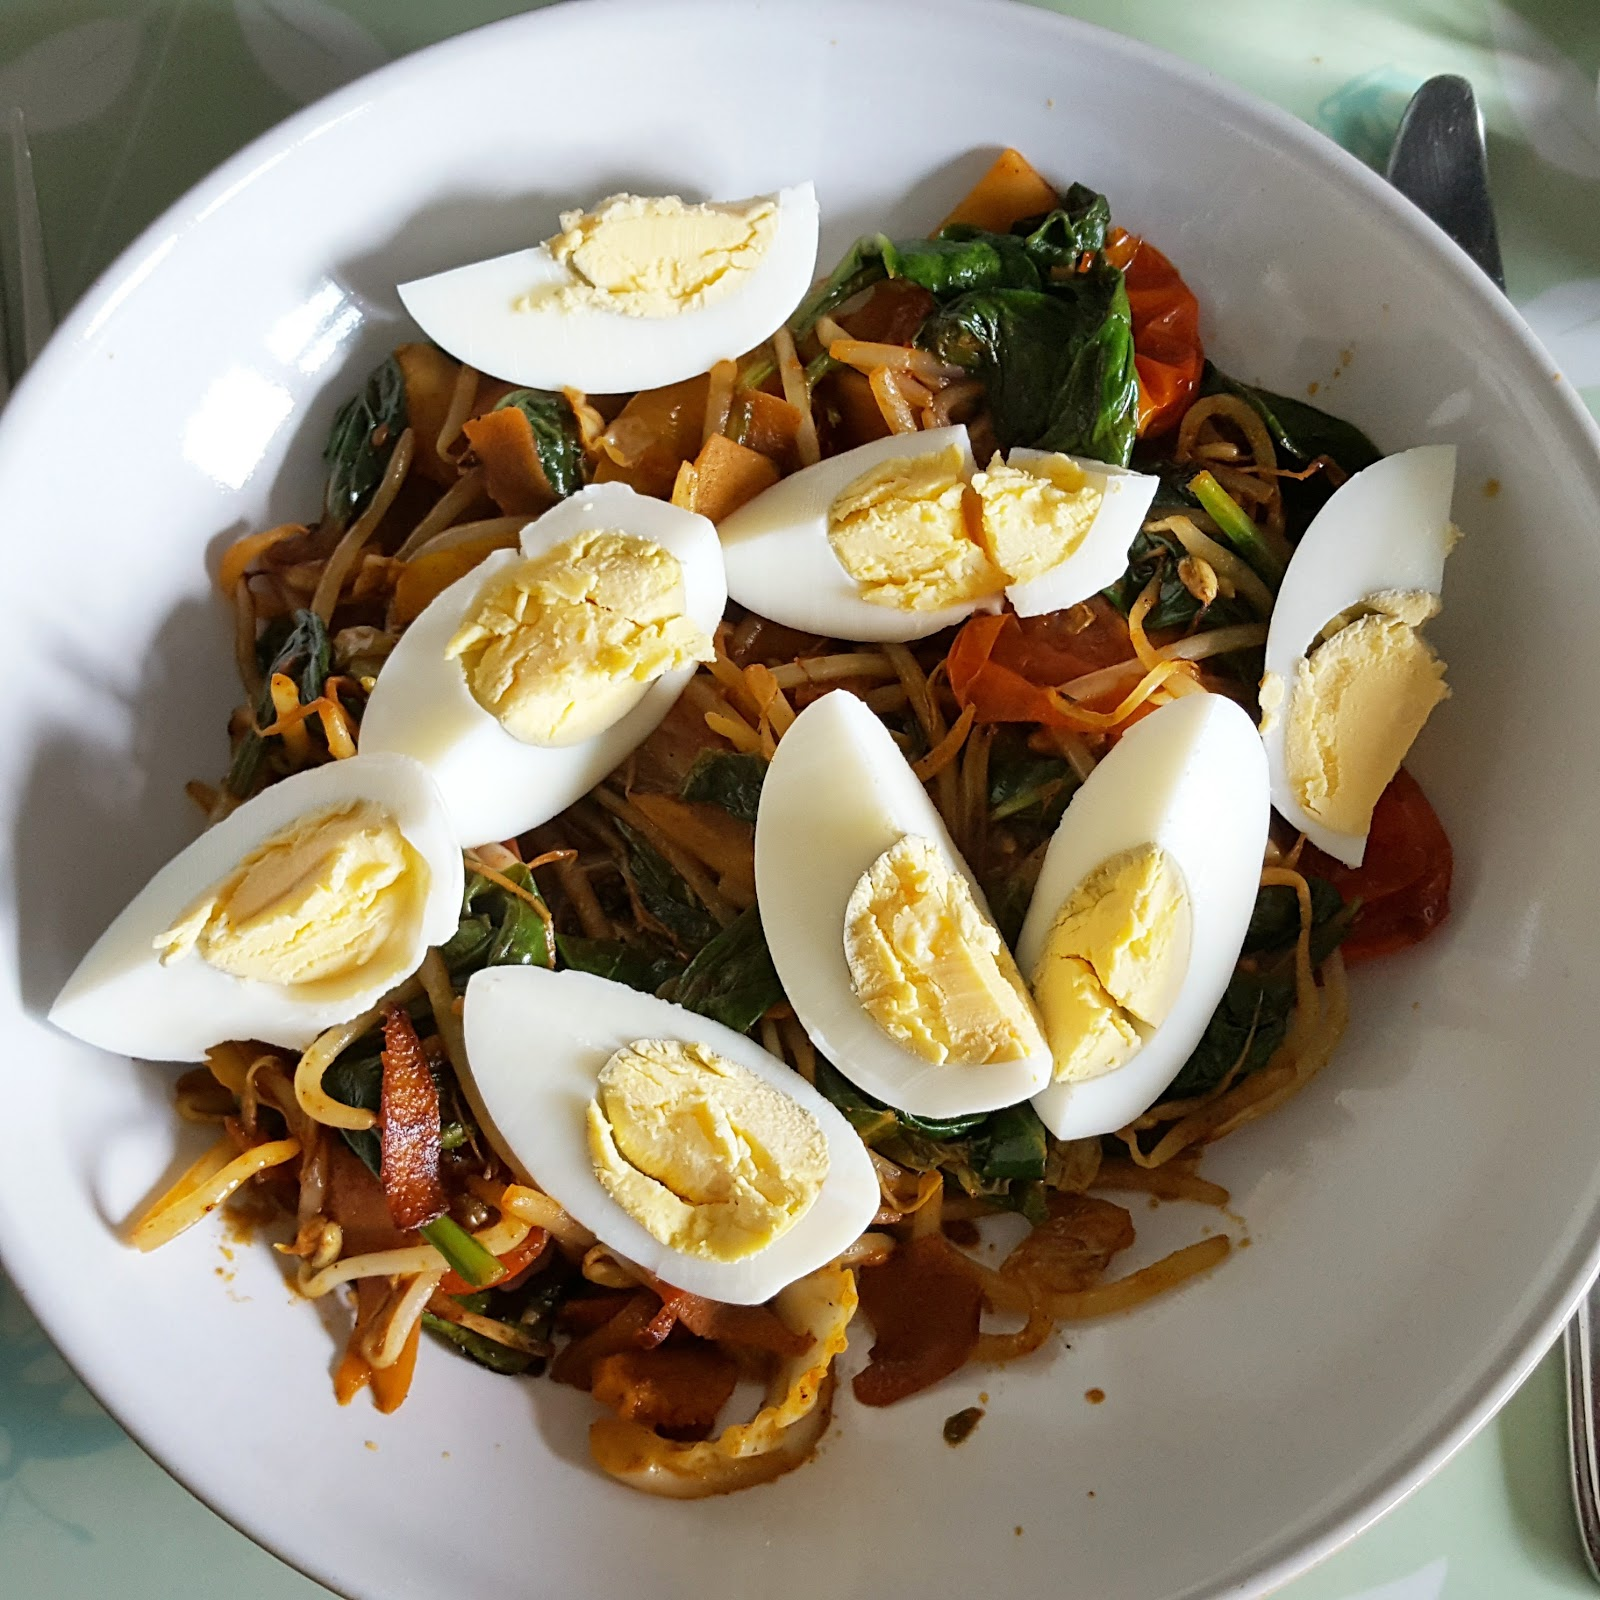 Stir Fry Veg and Eggs - candida diet phase one